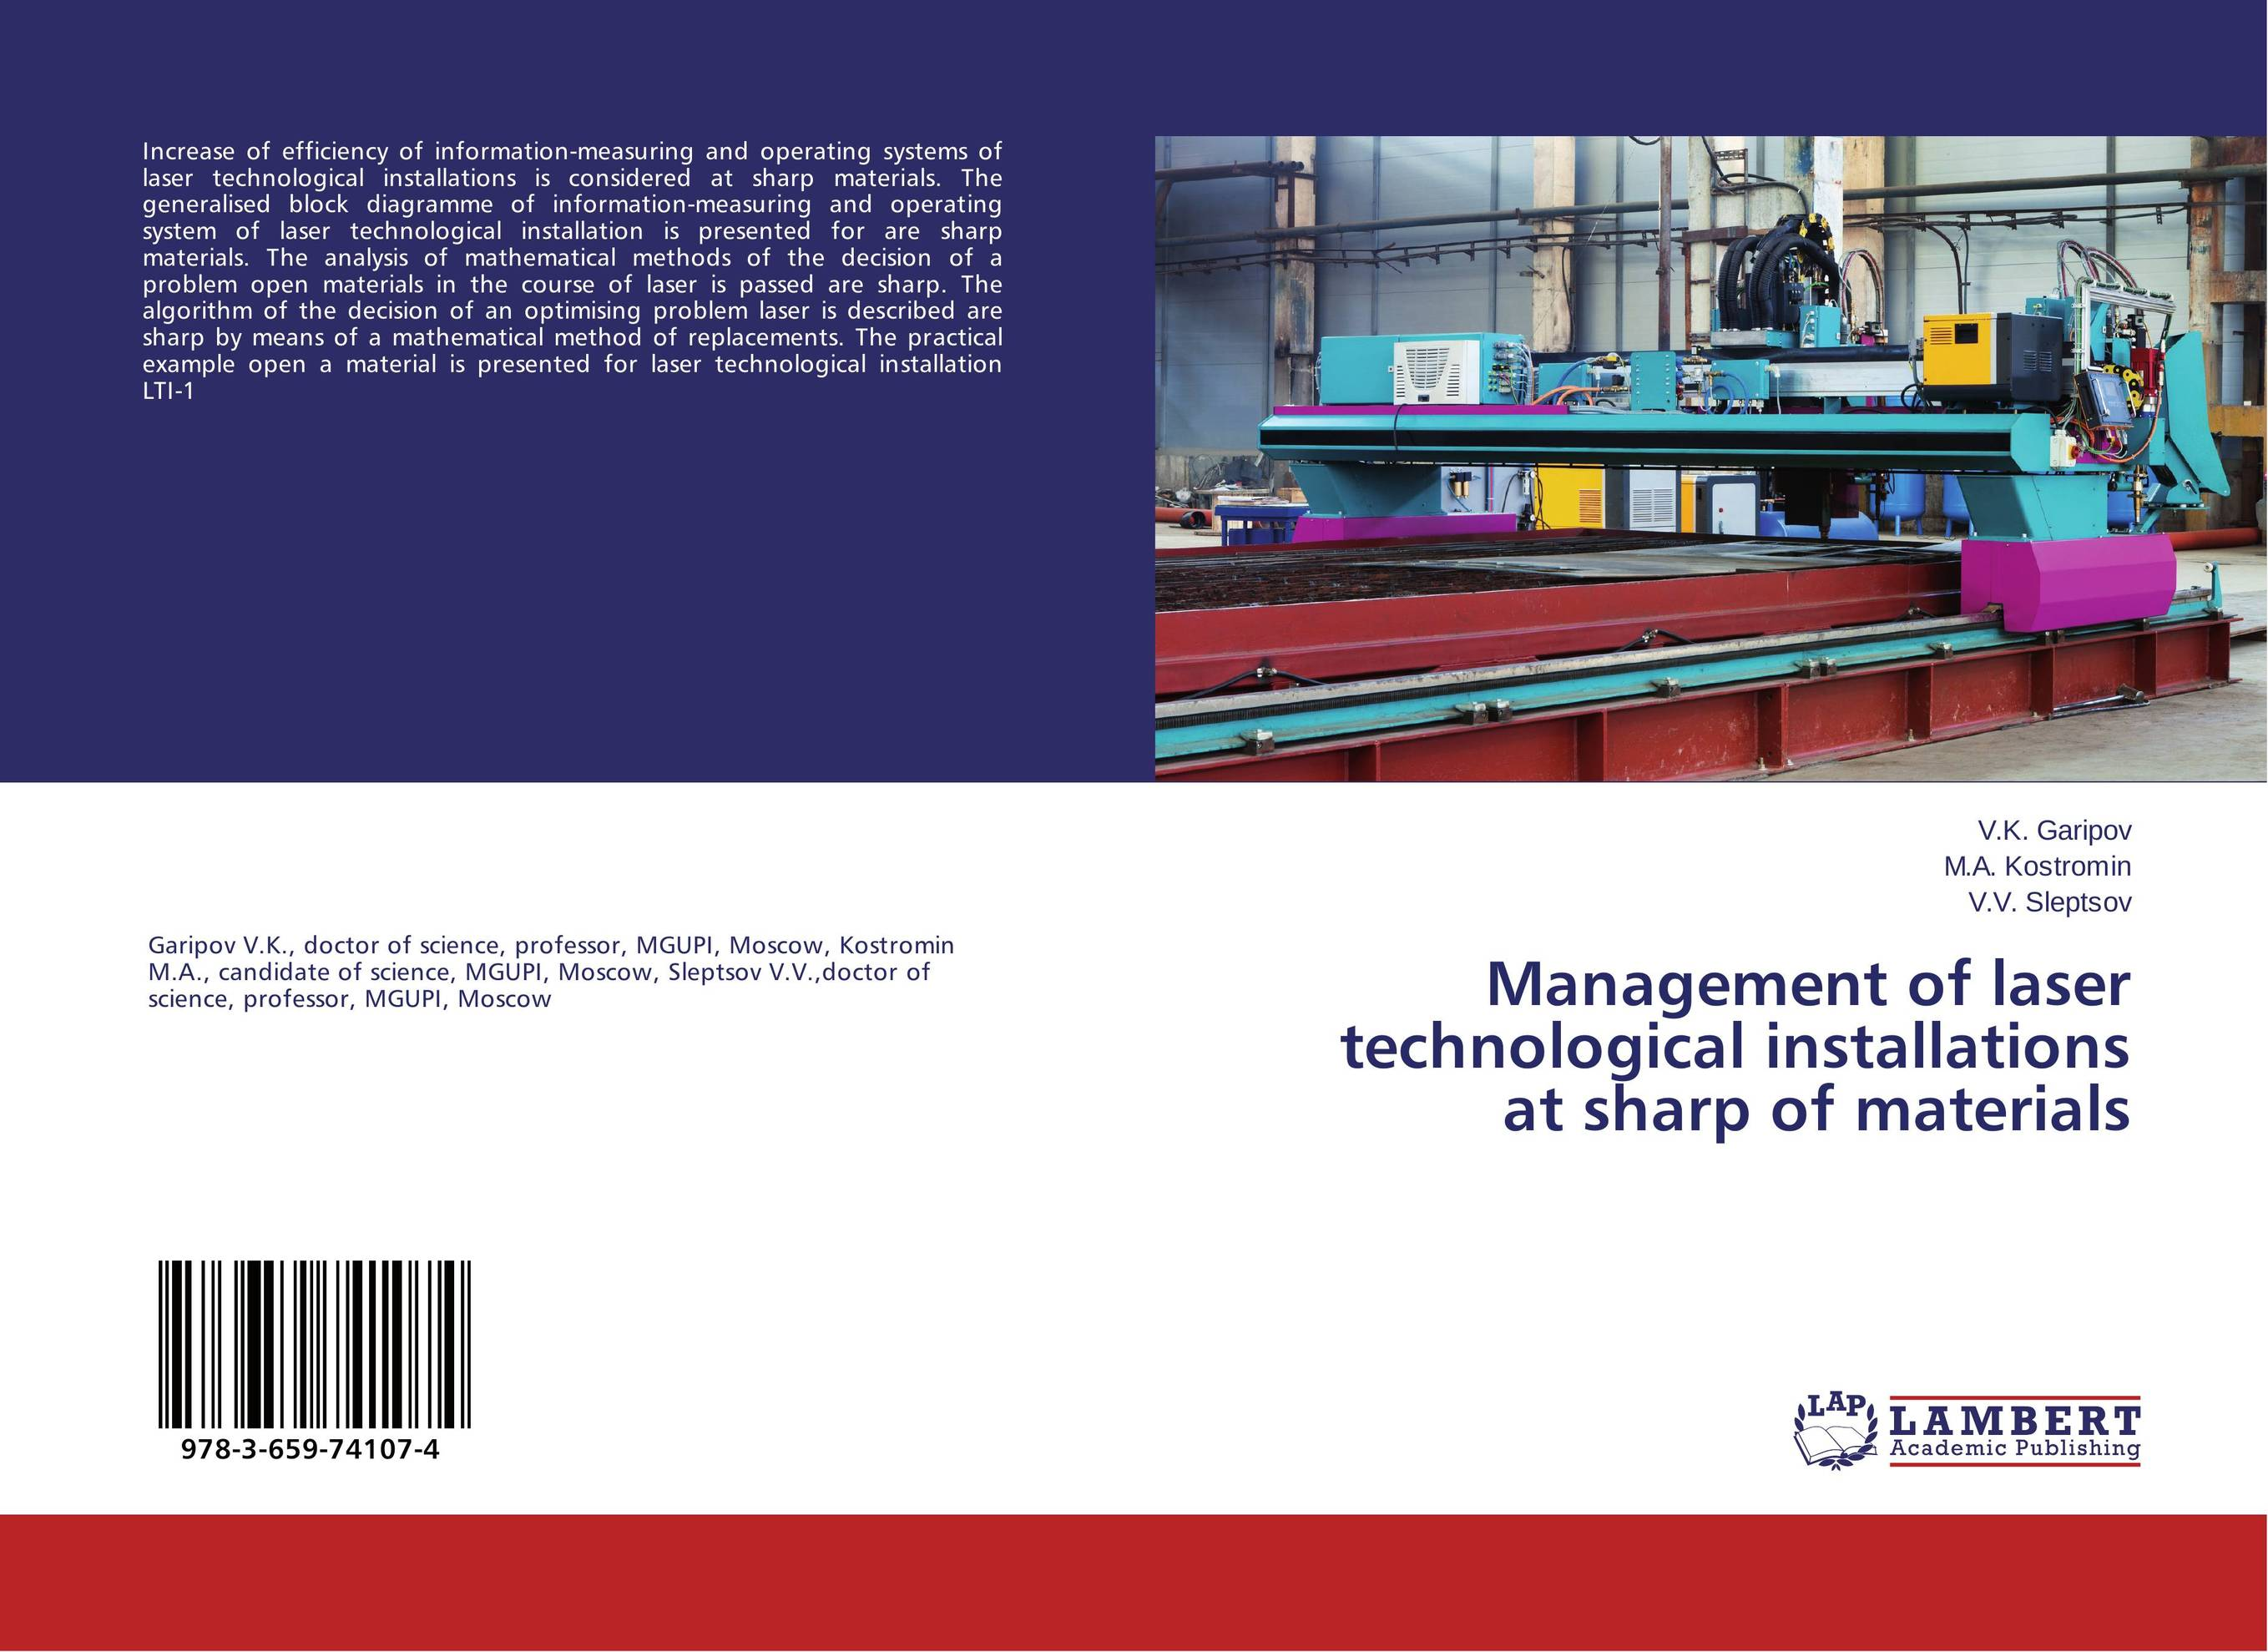 Management of laser technological installations at sharp of materials